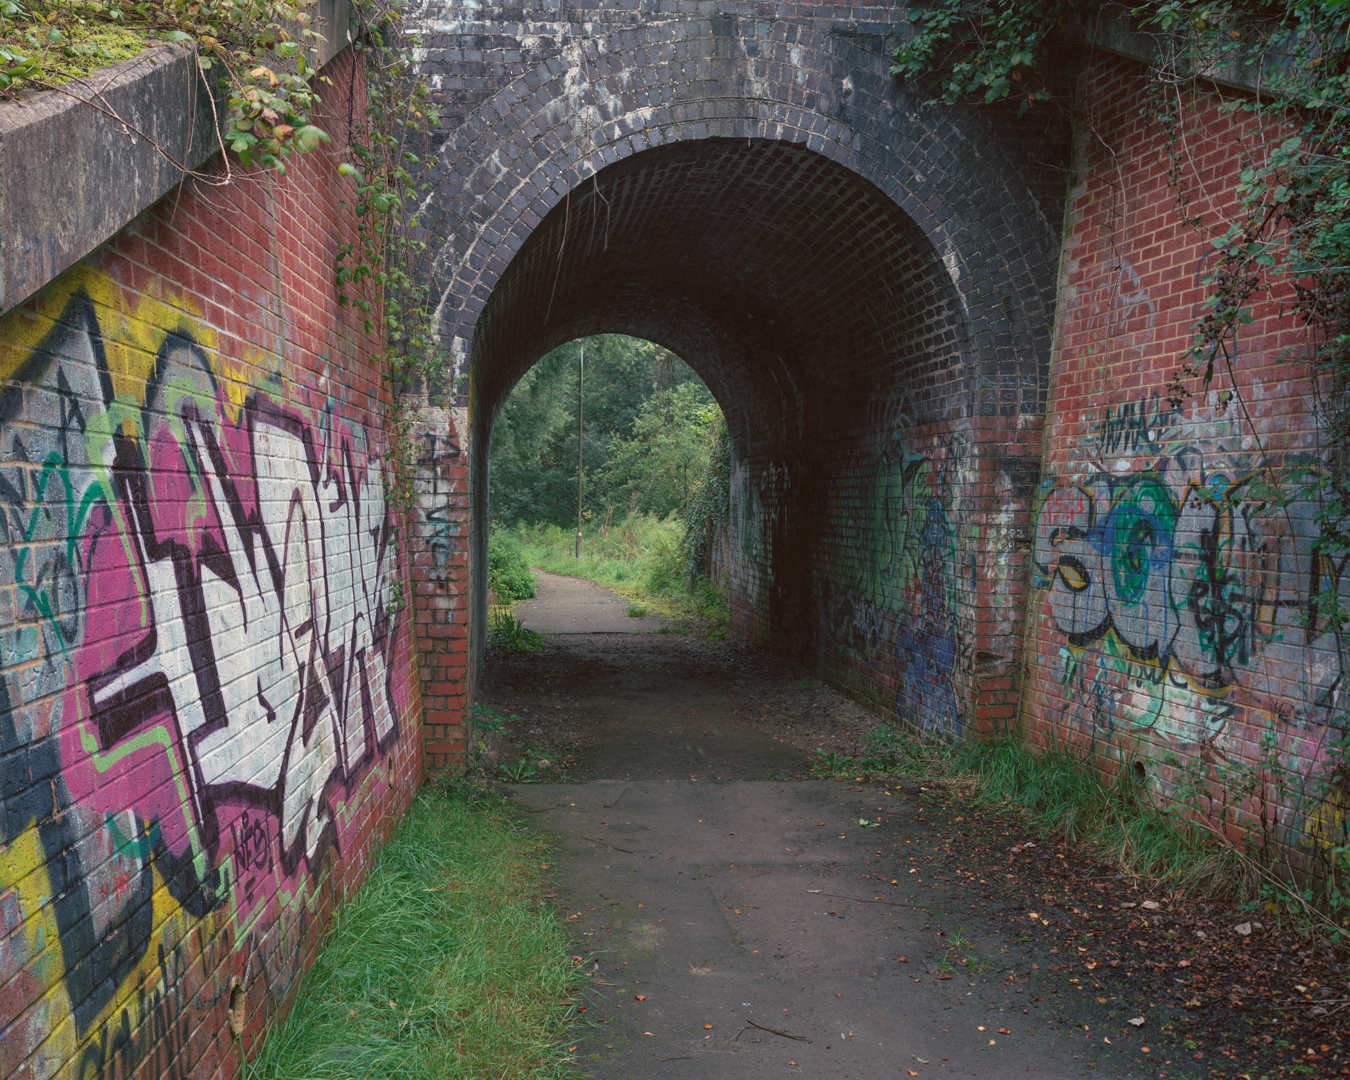 Railway underpass at Sparcells, Swindon, 2016